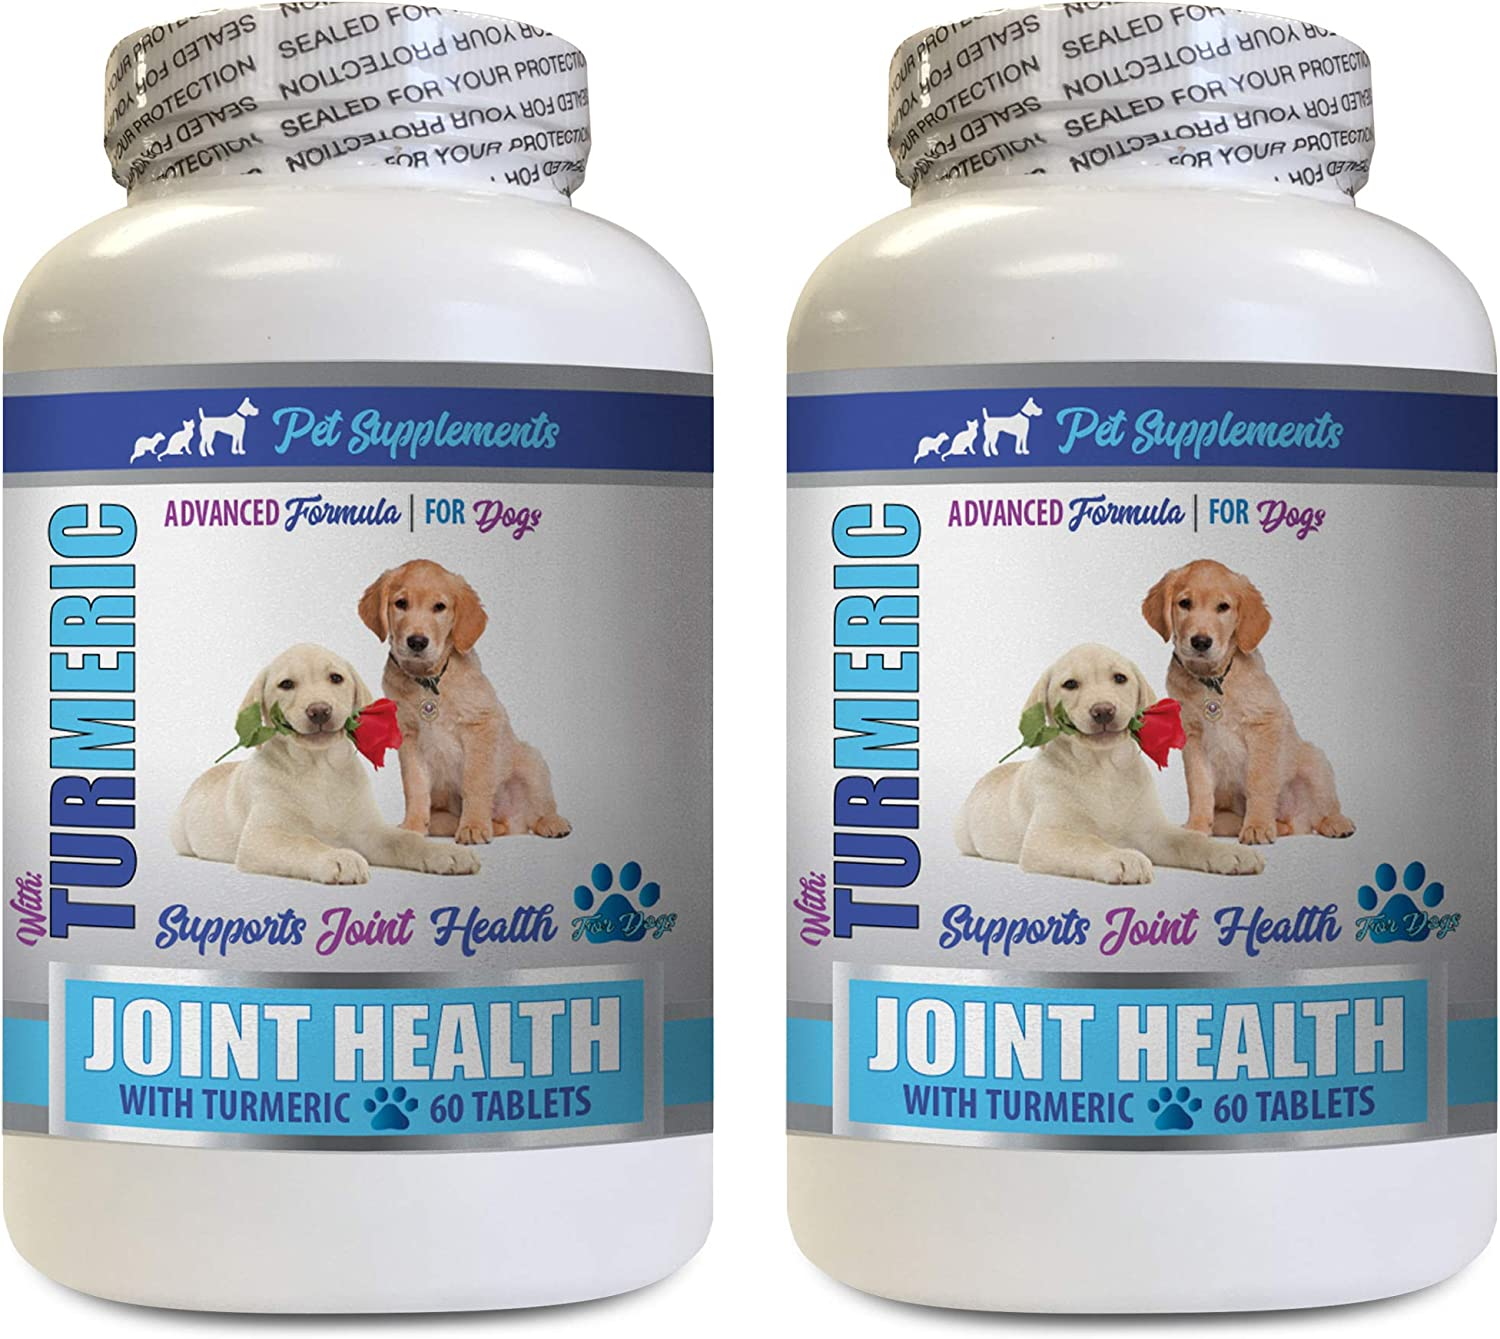 PET SUPPLEMENTS NUTRITION LLC Dog At the price of surprise - Albuquerque Mall Joint Health Support